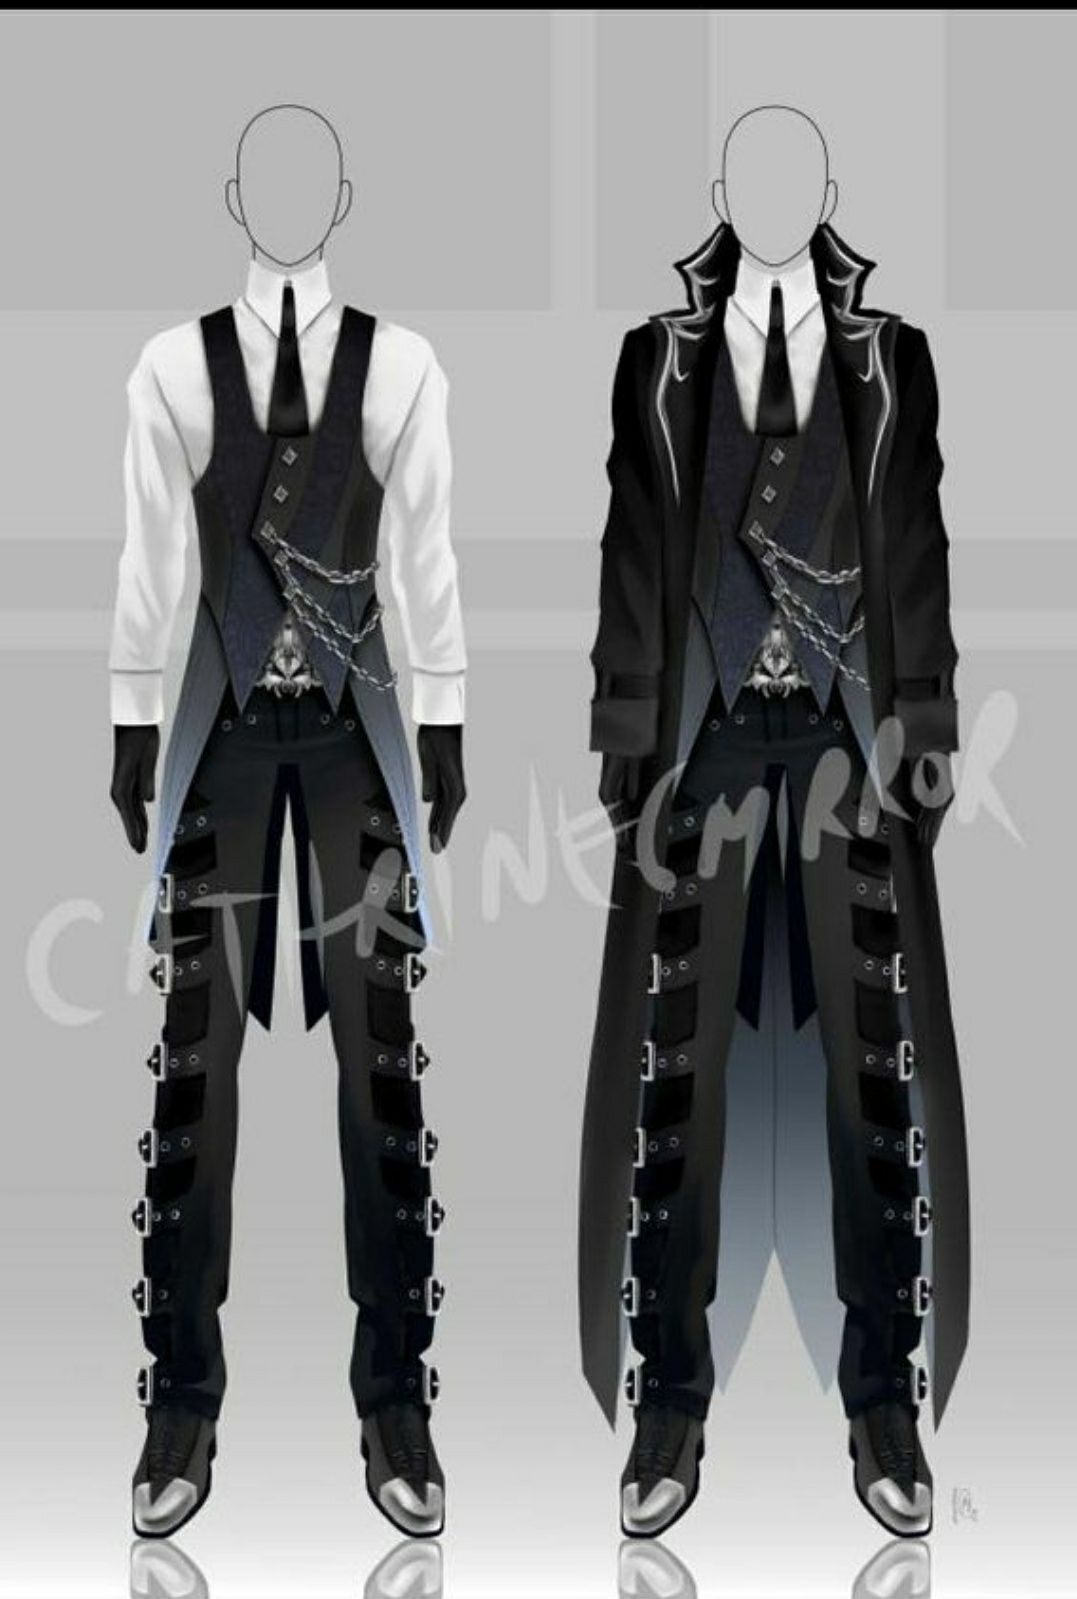 Pin By Spencer On Anime Outfits In 2020 Clothes Design Anime Outfits Art Clothes